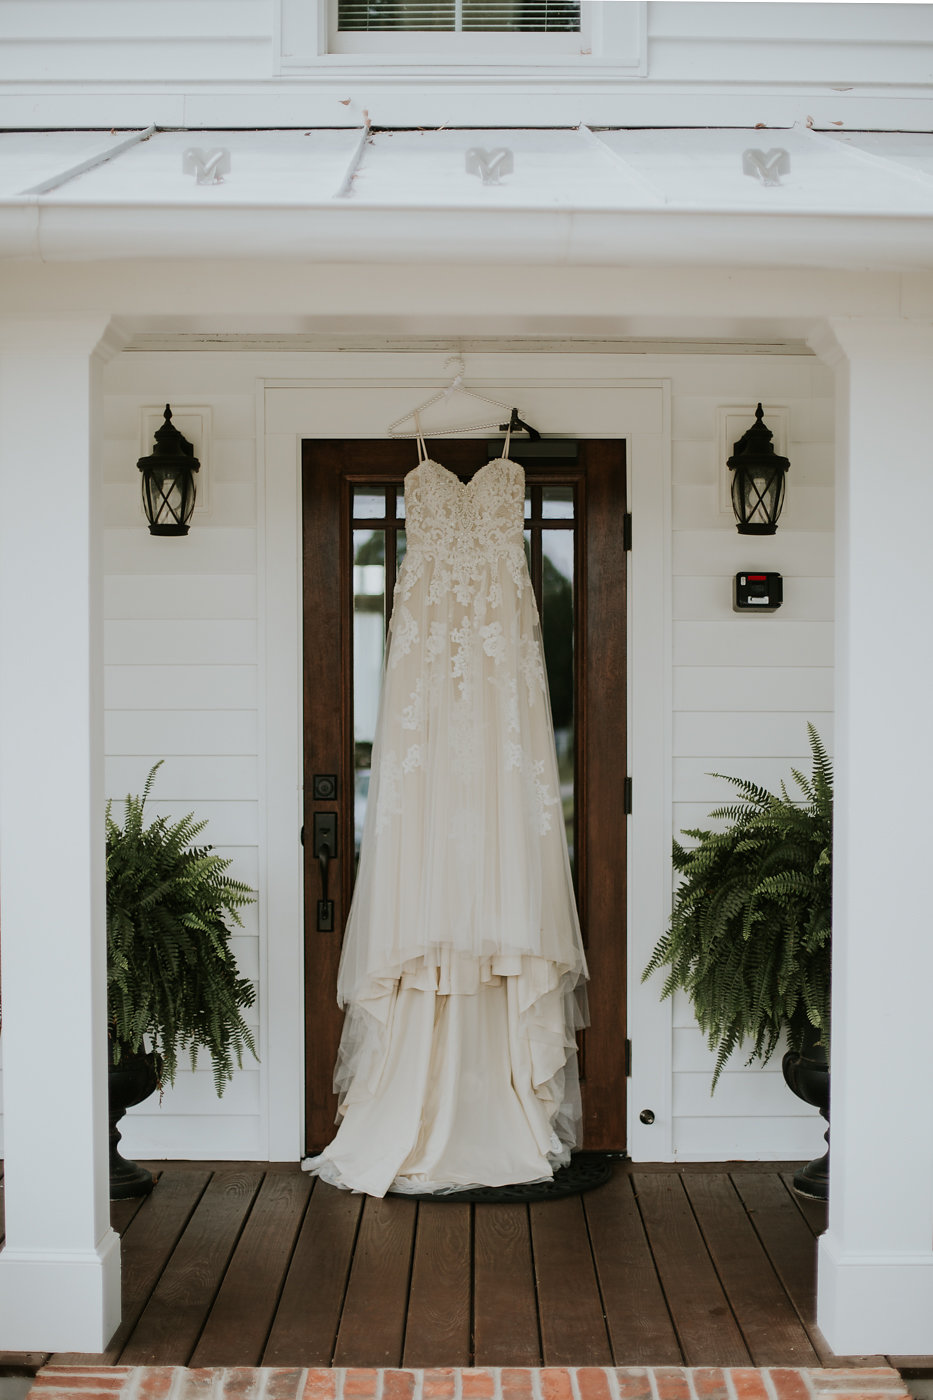 Beaded Wedding Dress - North Carolina Wedding Venue - Triple J Manor House Wedding